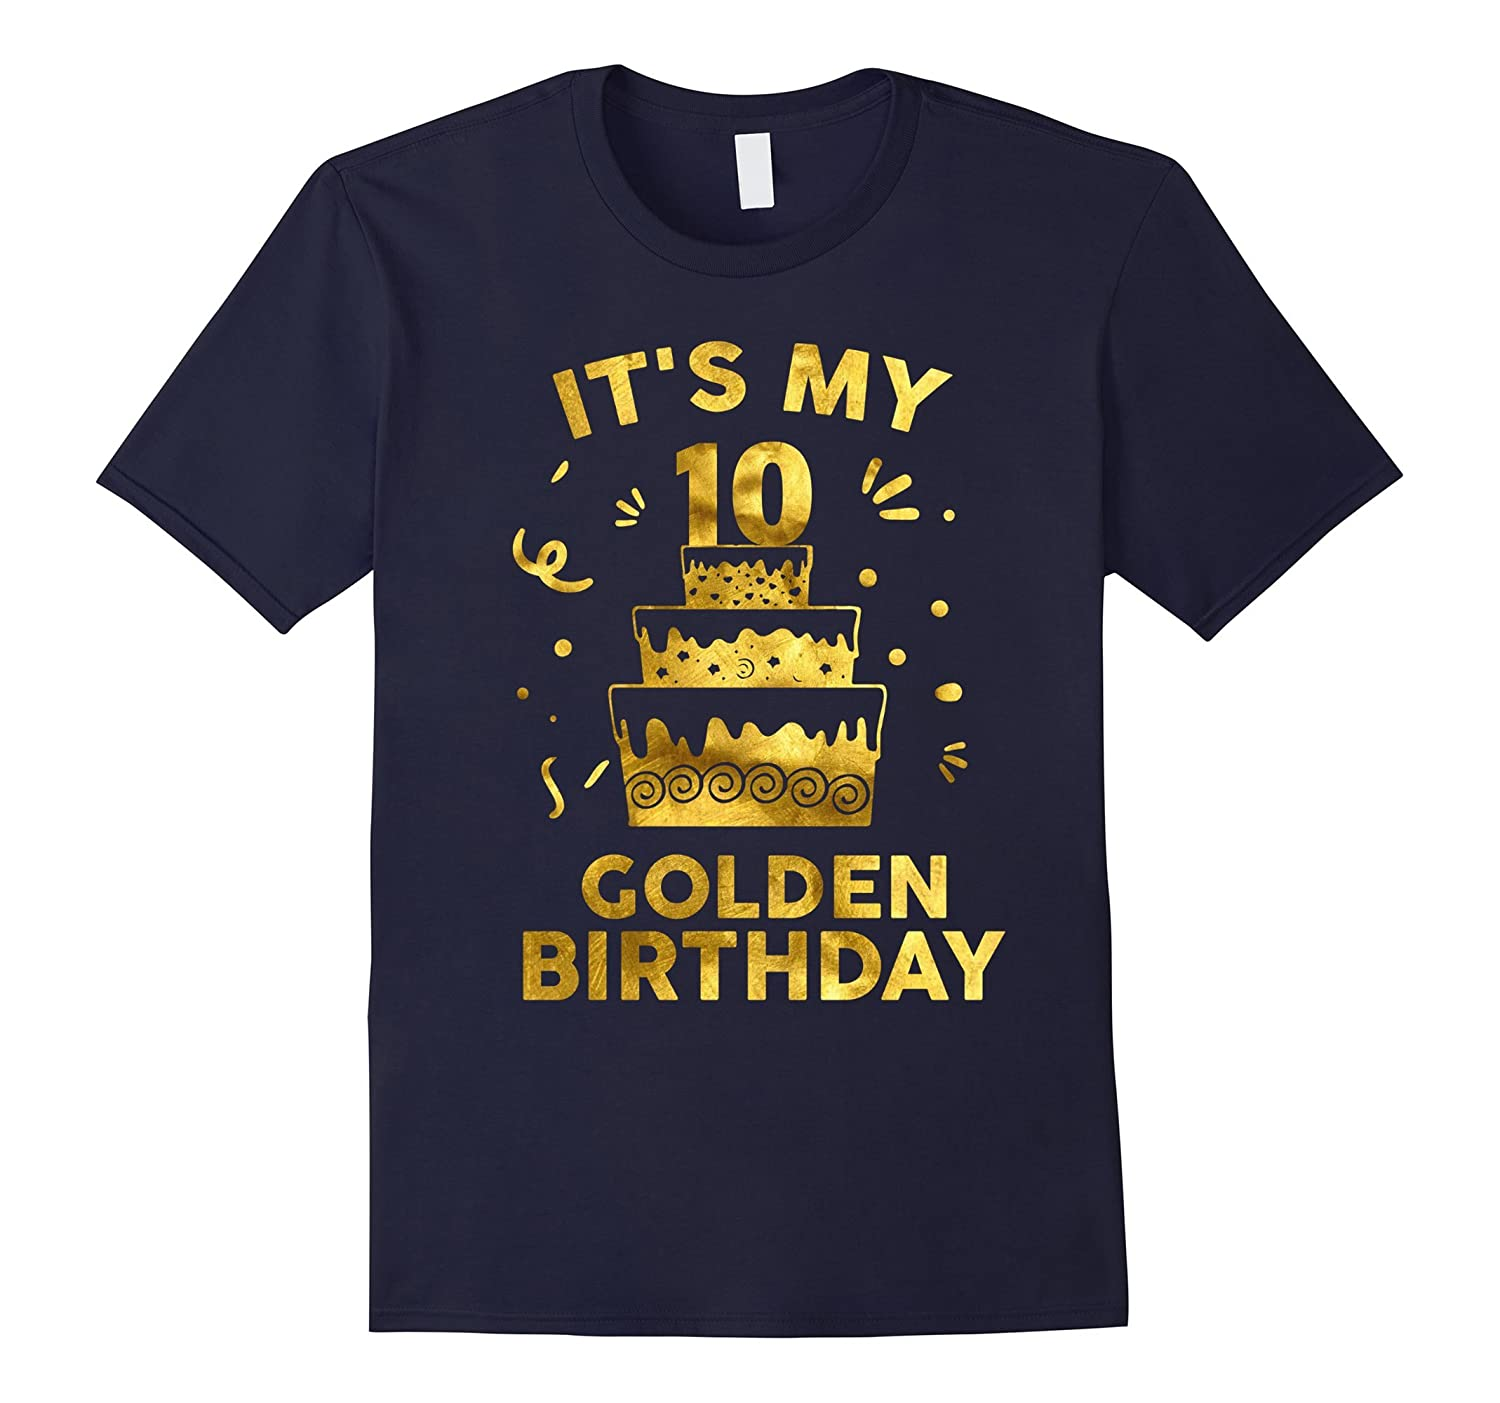 10th Birthday Shirt It's My 10th Golden Birthday Vintage-FL